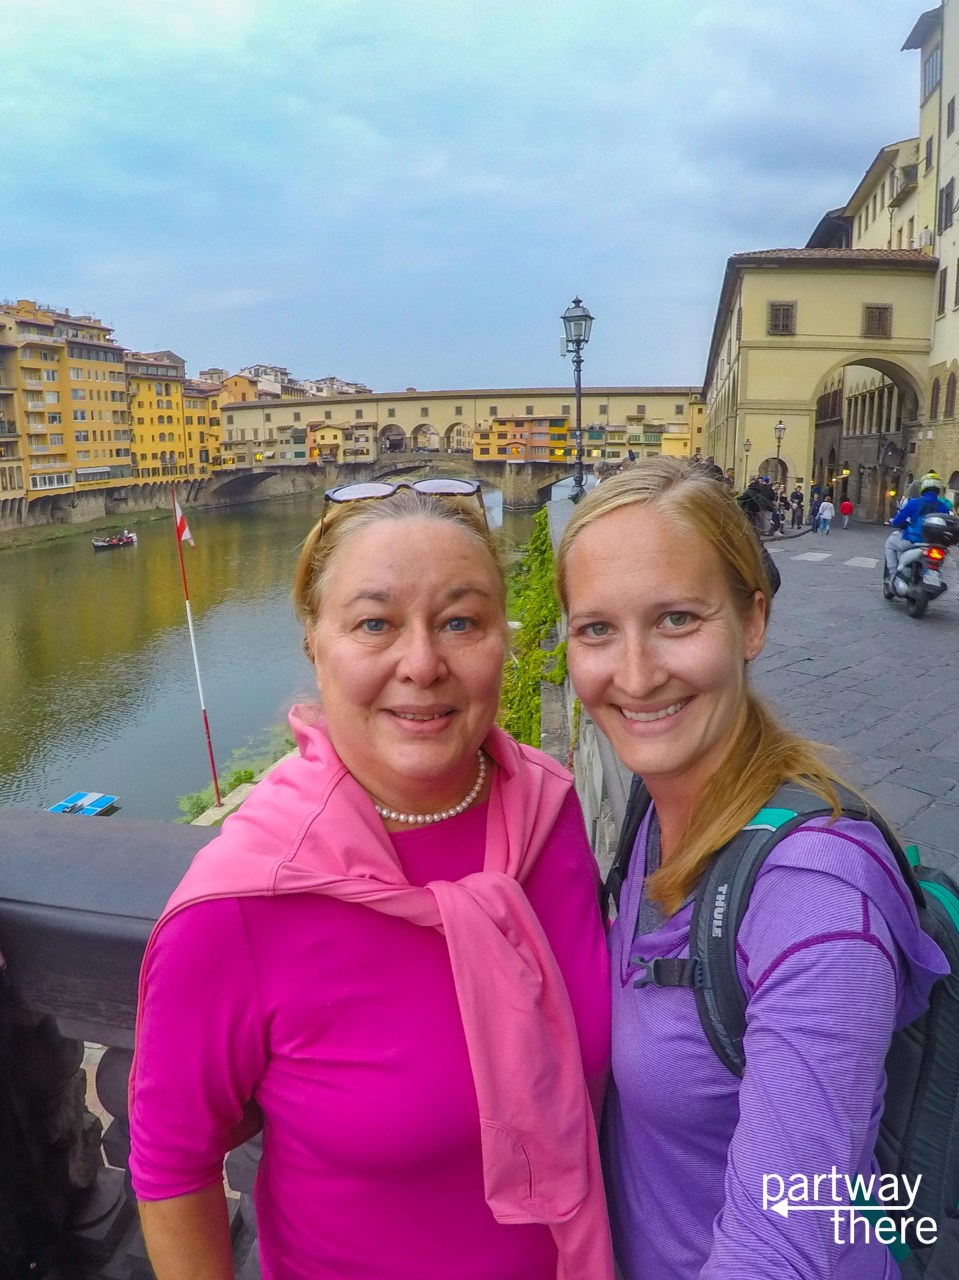 Amanda Plewes and Donna Plewes in front of the Ponte Vecchio in Florence, Italy